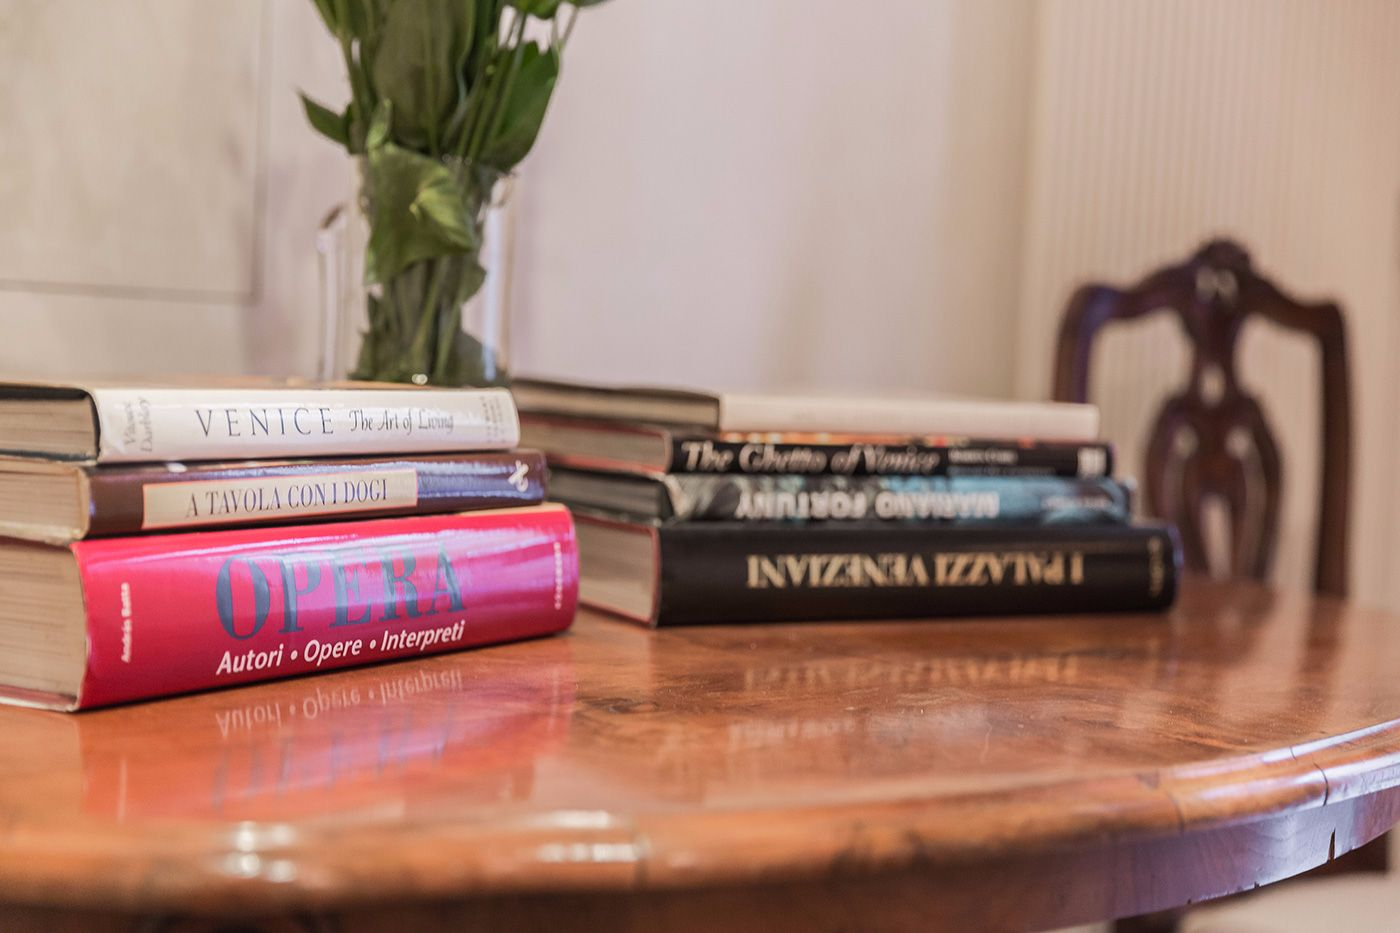 at the Tintoretto you can find interesting books about the history and culture of Venice